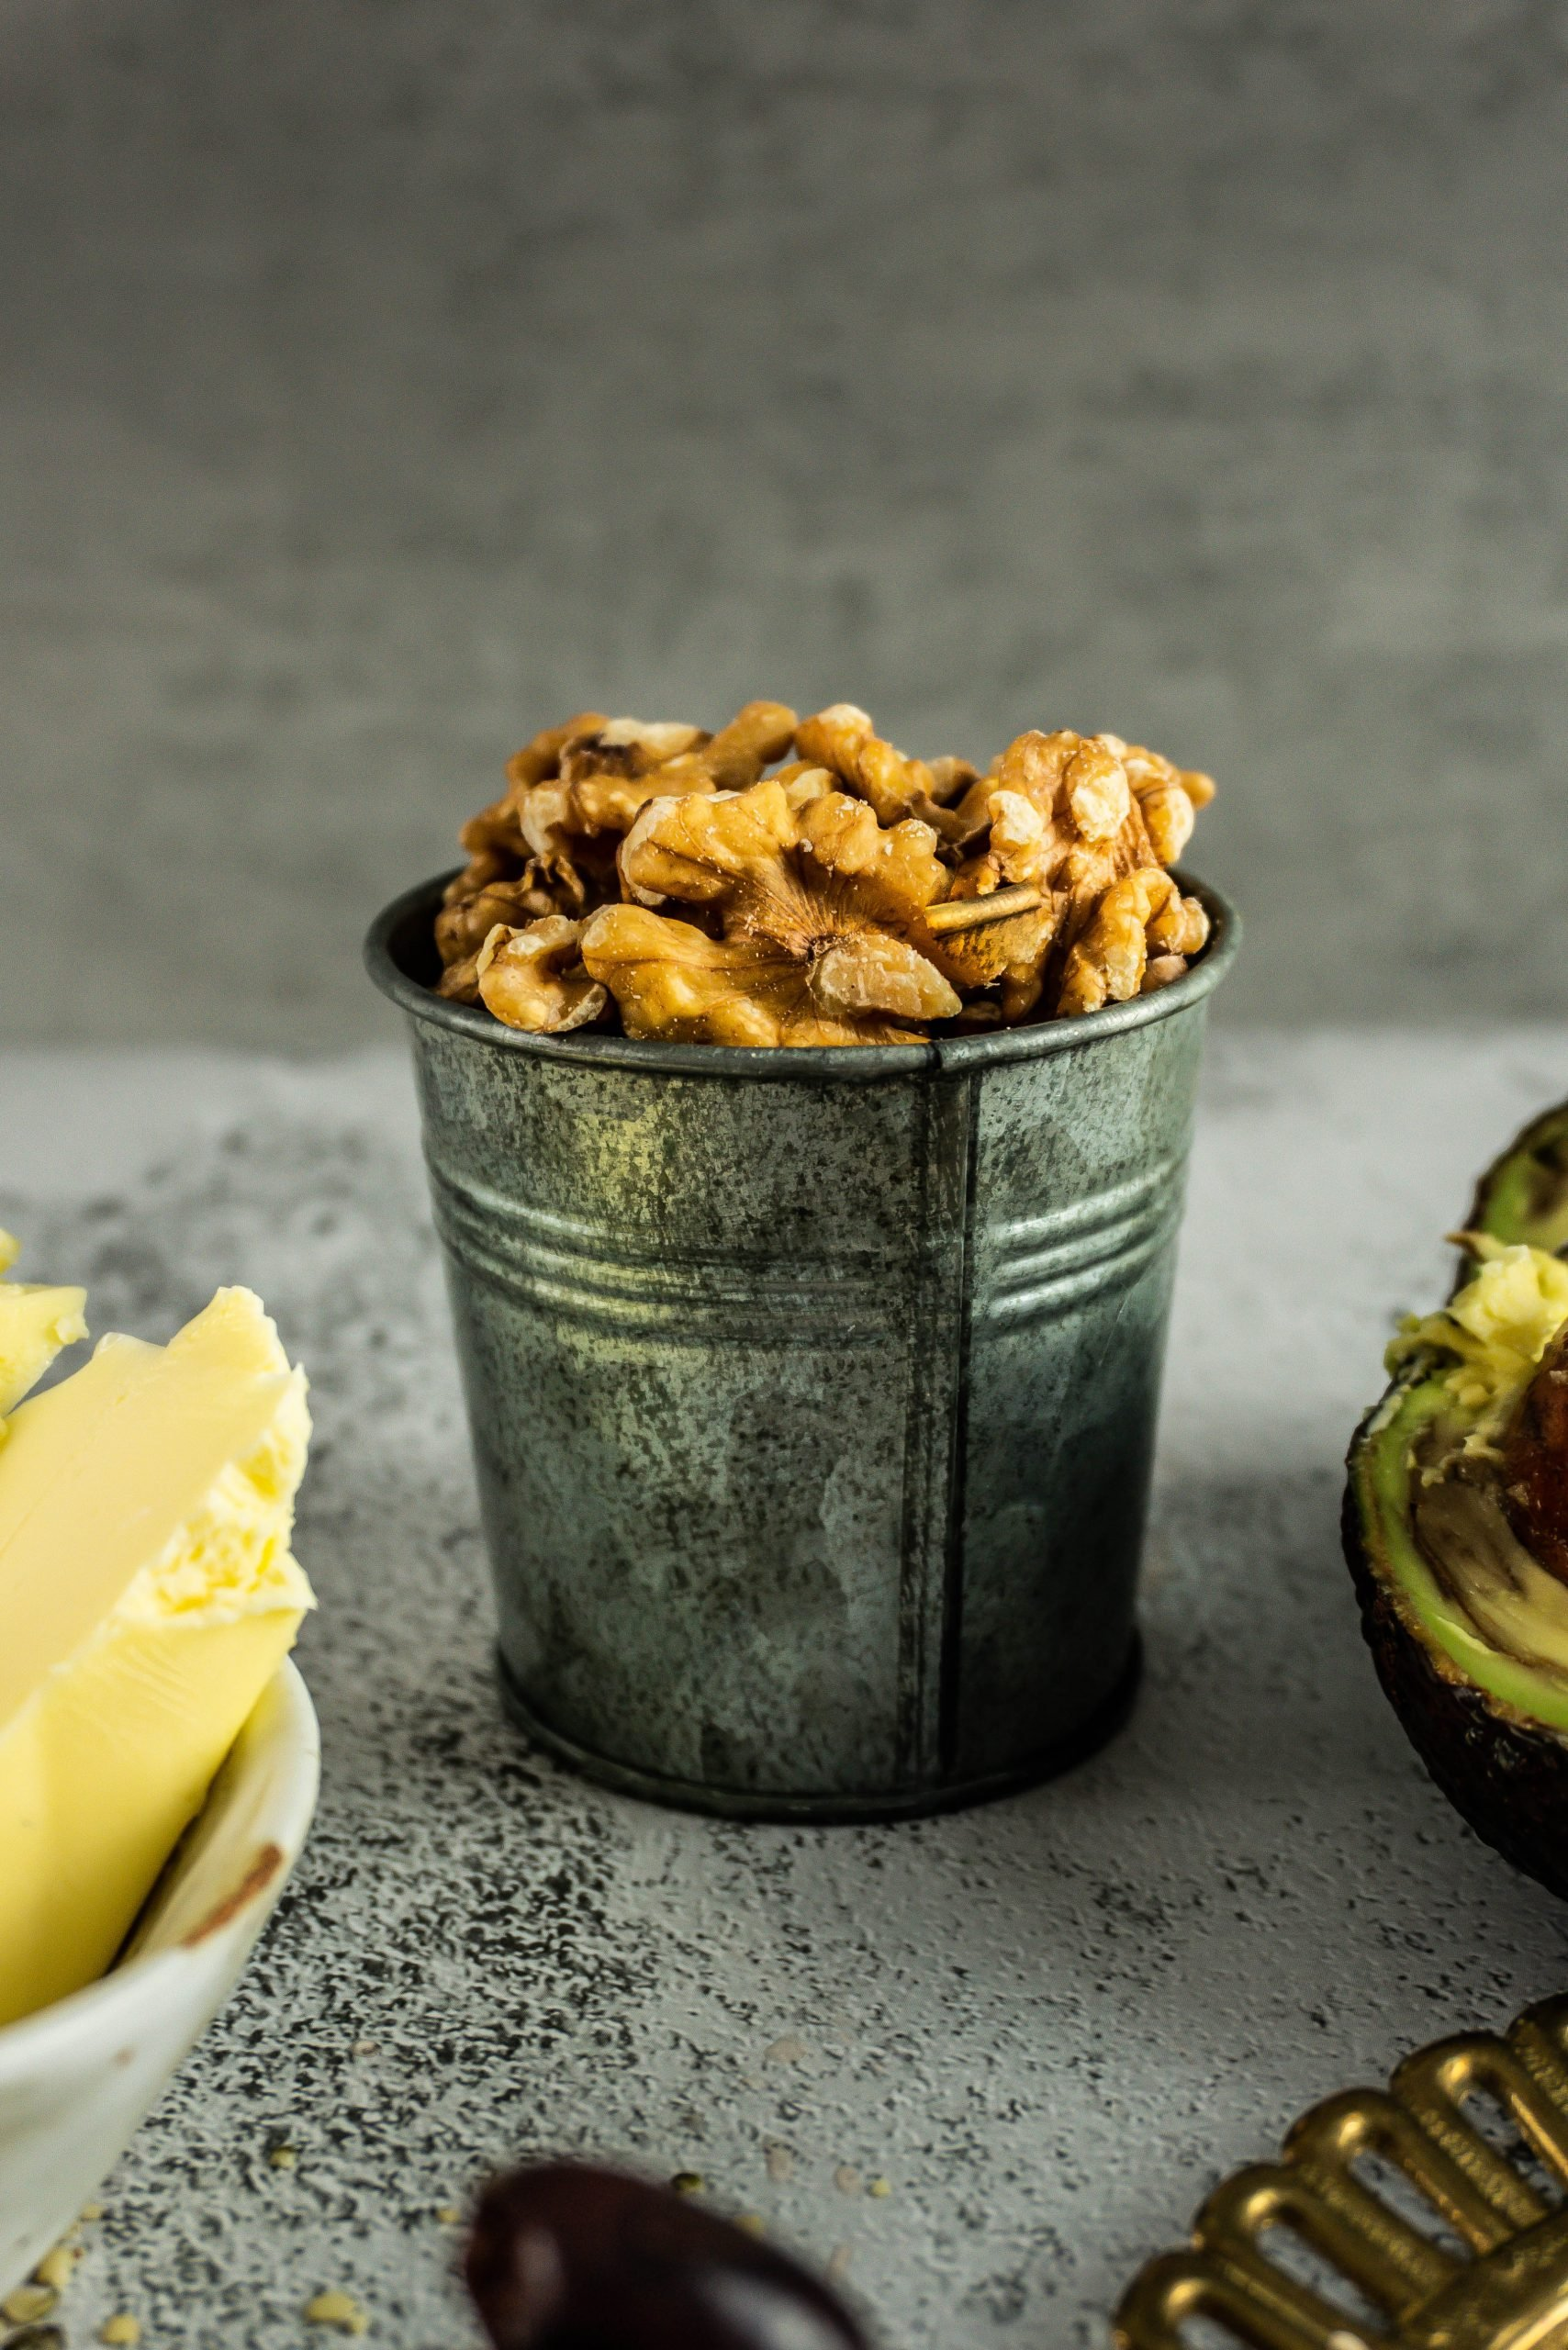 Walnuts packed in a small tin cup